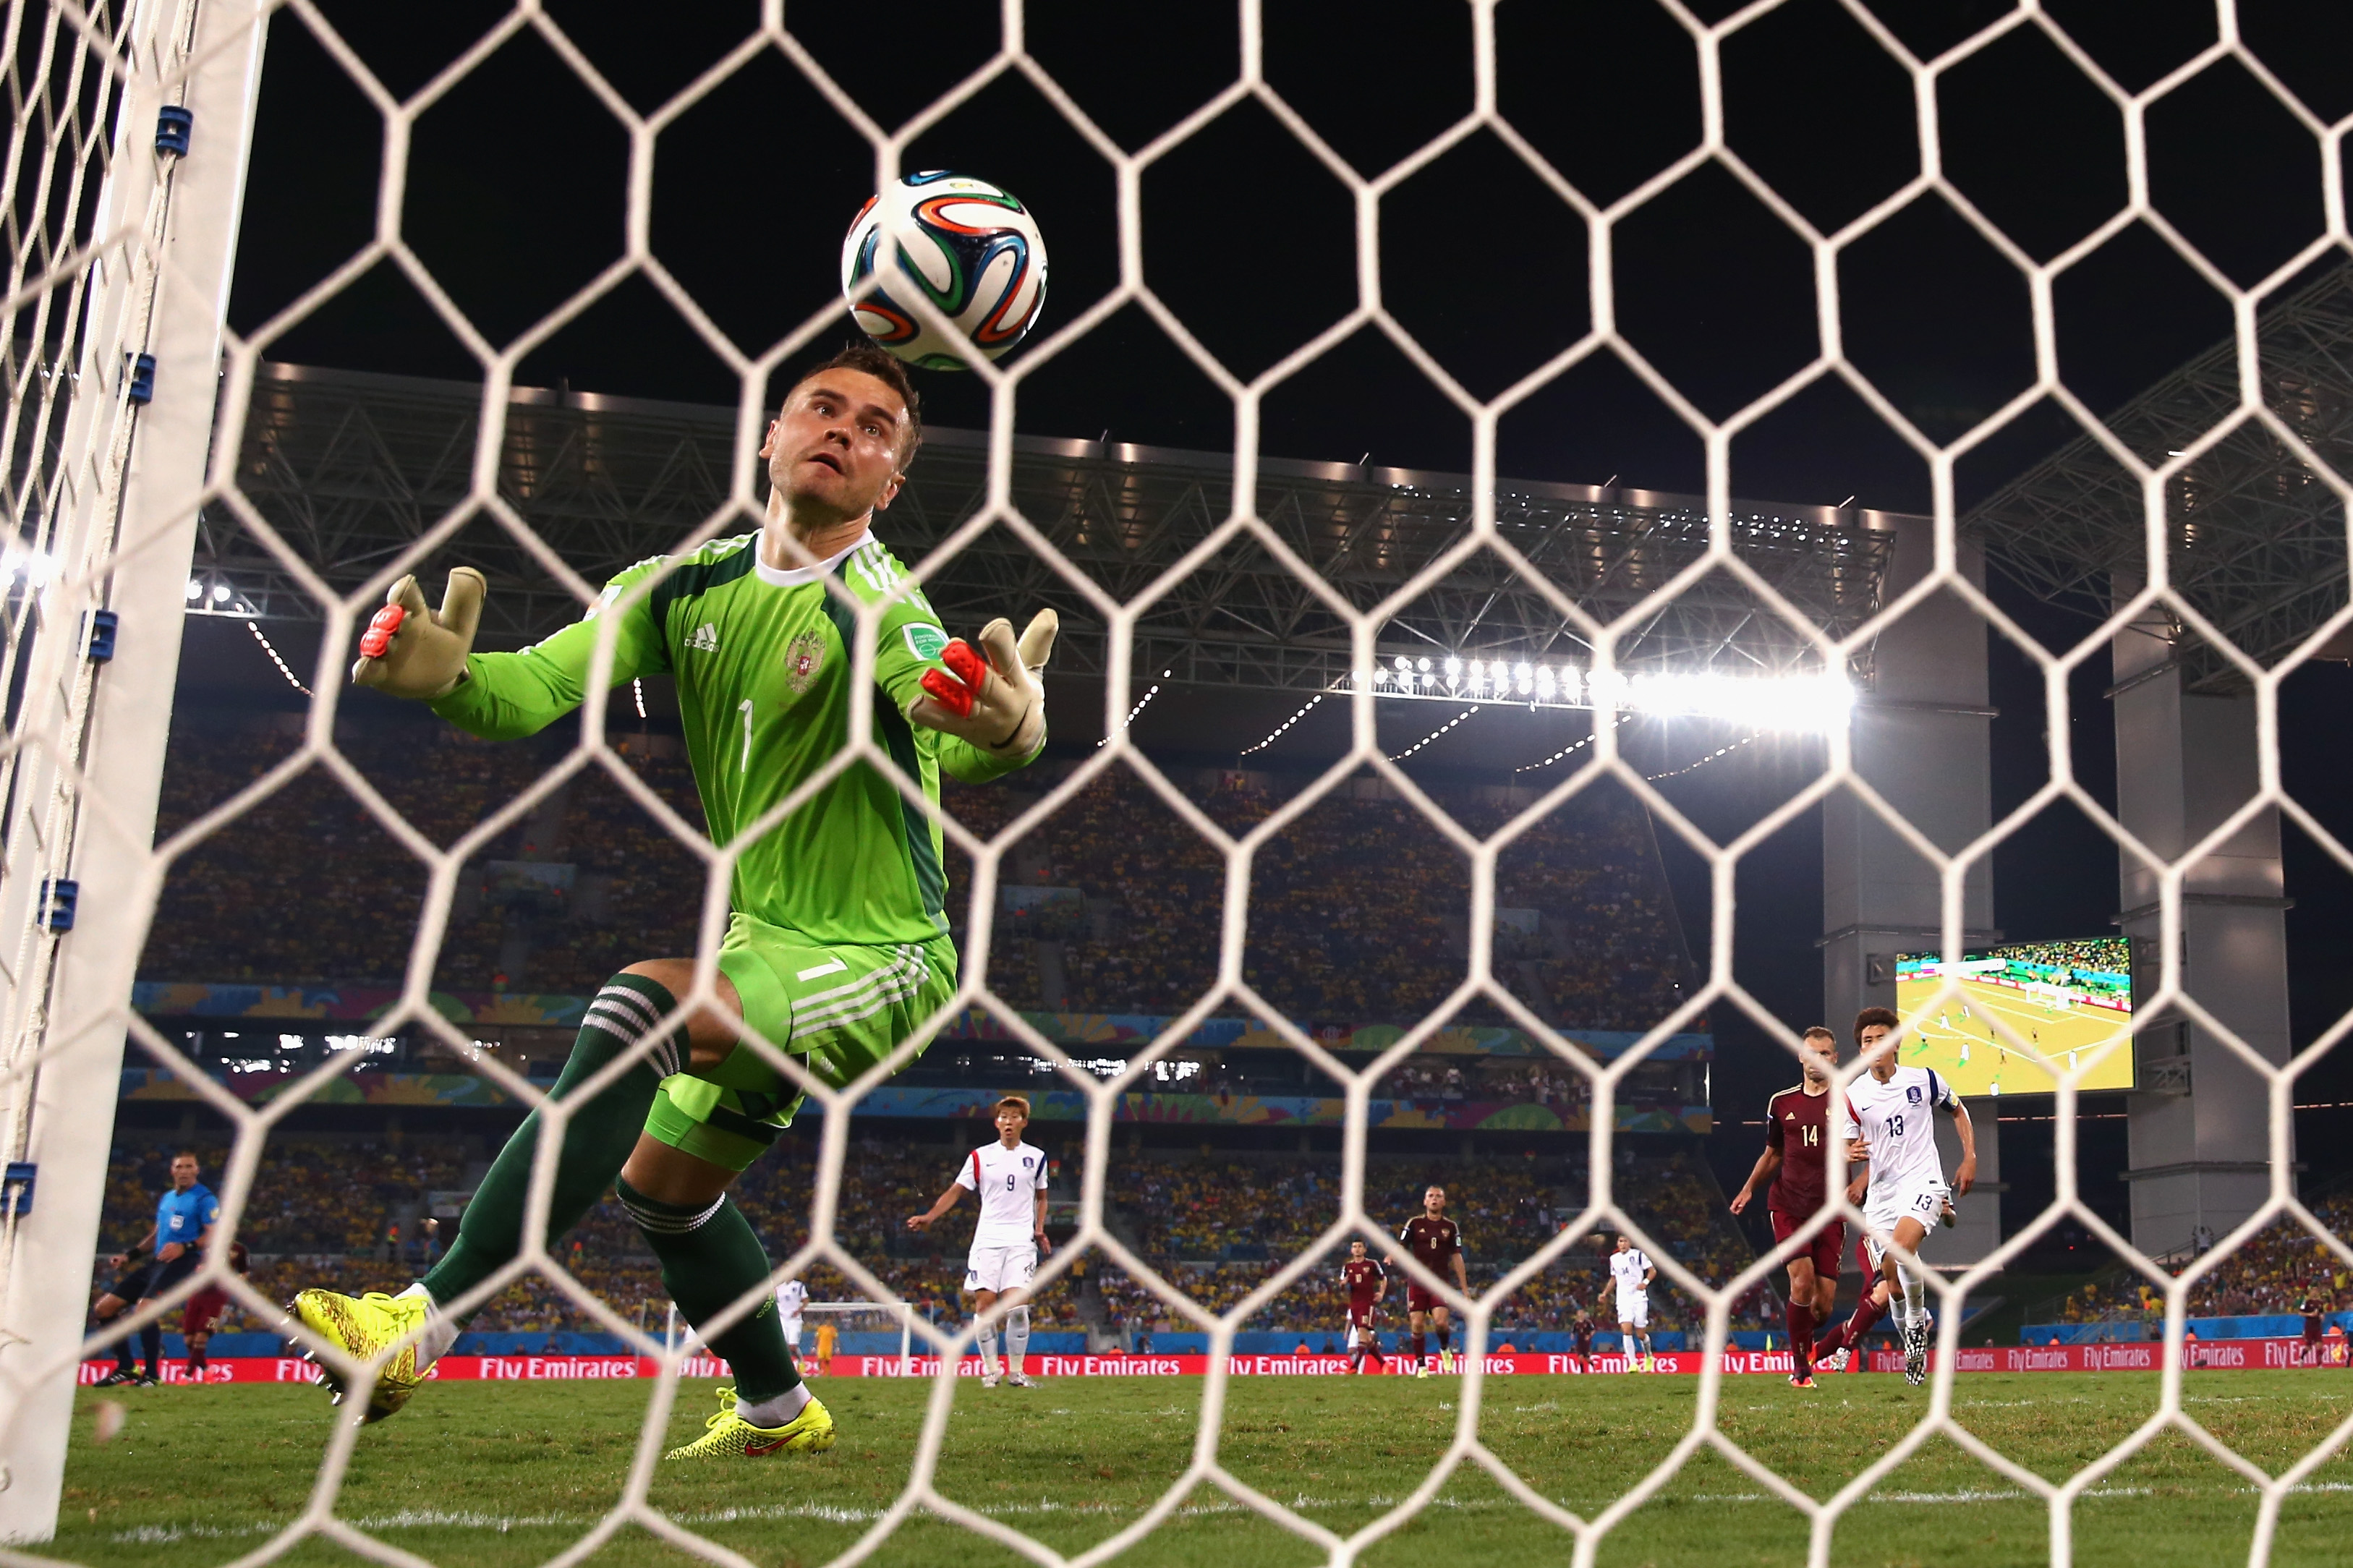 Igor Akinfeev of Russia fails to save a shot by Lee Keun-Ho of South Korea for South Korea's first goal during the 2014 FIFA World Cup Brazil Group H match between Russia and South Korea at Arena Pantanal on June 17, 2014 in Cuiaba, Brazil.